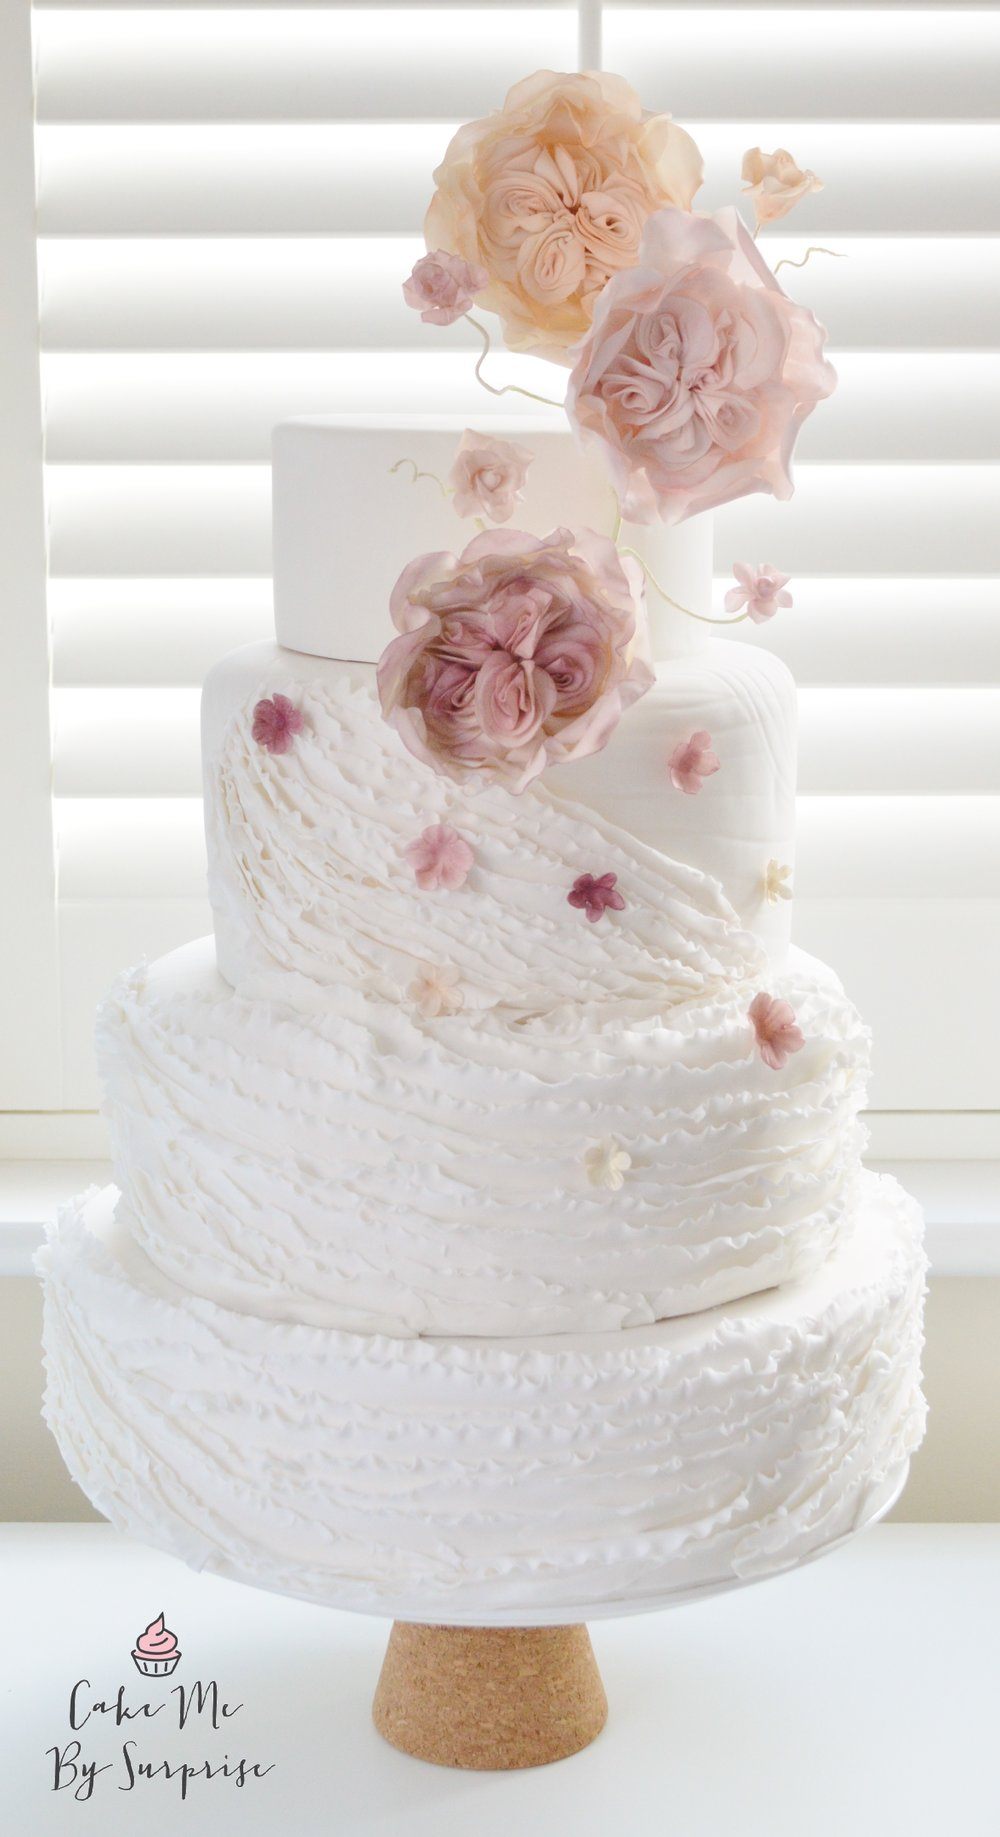 Spring Time Blossoms Delicate hand made ruffles elegantly wrap this cake, complete with soft falling blossoms in muted shades of plum, pink, peach and a shimmery ivory. Topped with trailing David Austin 'Cabbage Roses'  and wired fantasy flowers. Serves 100 £659